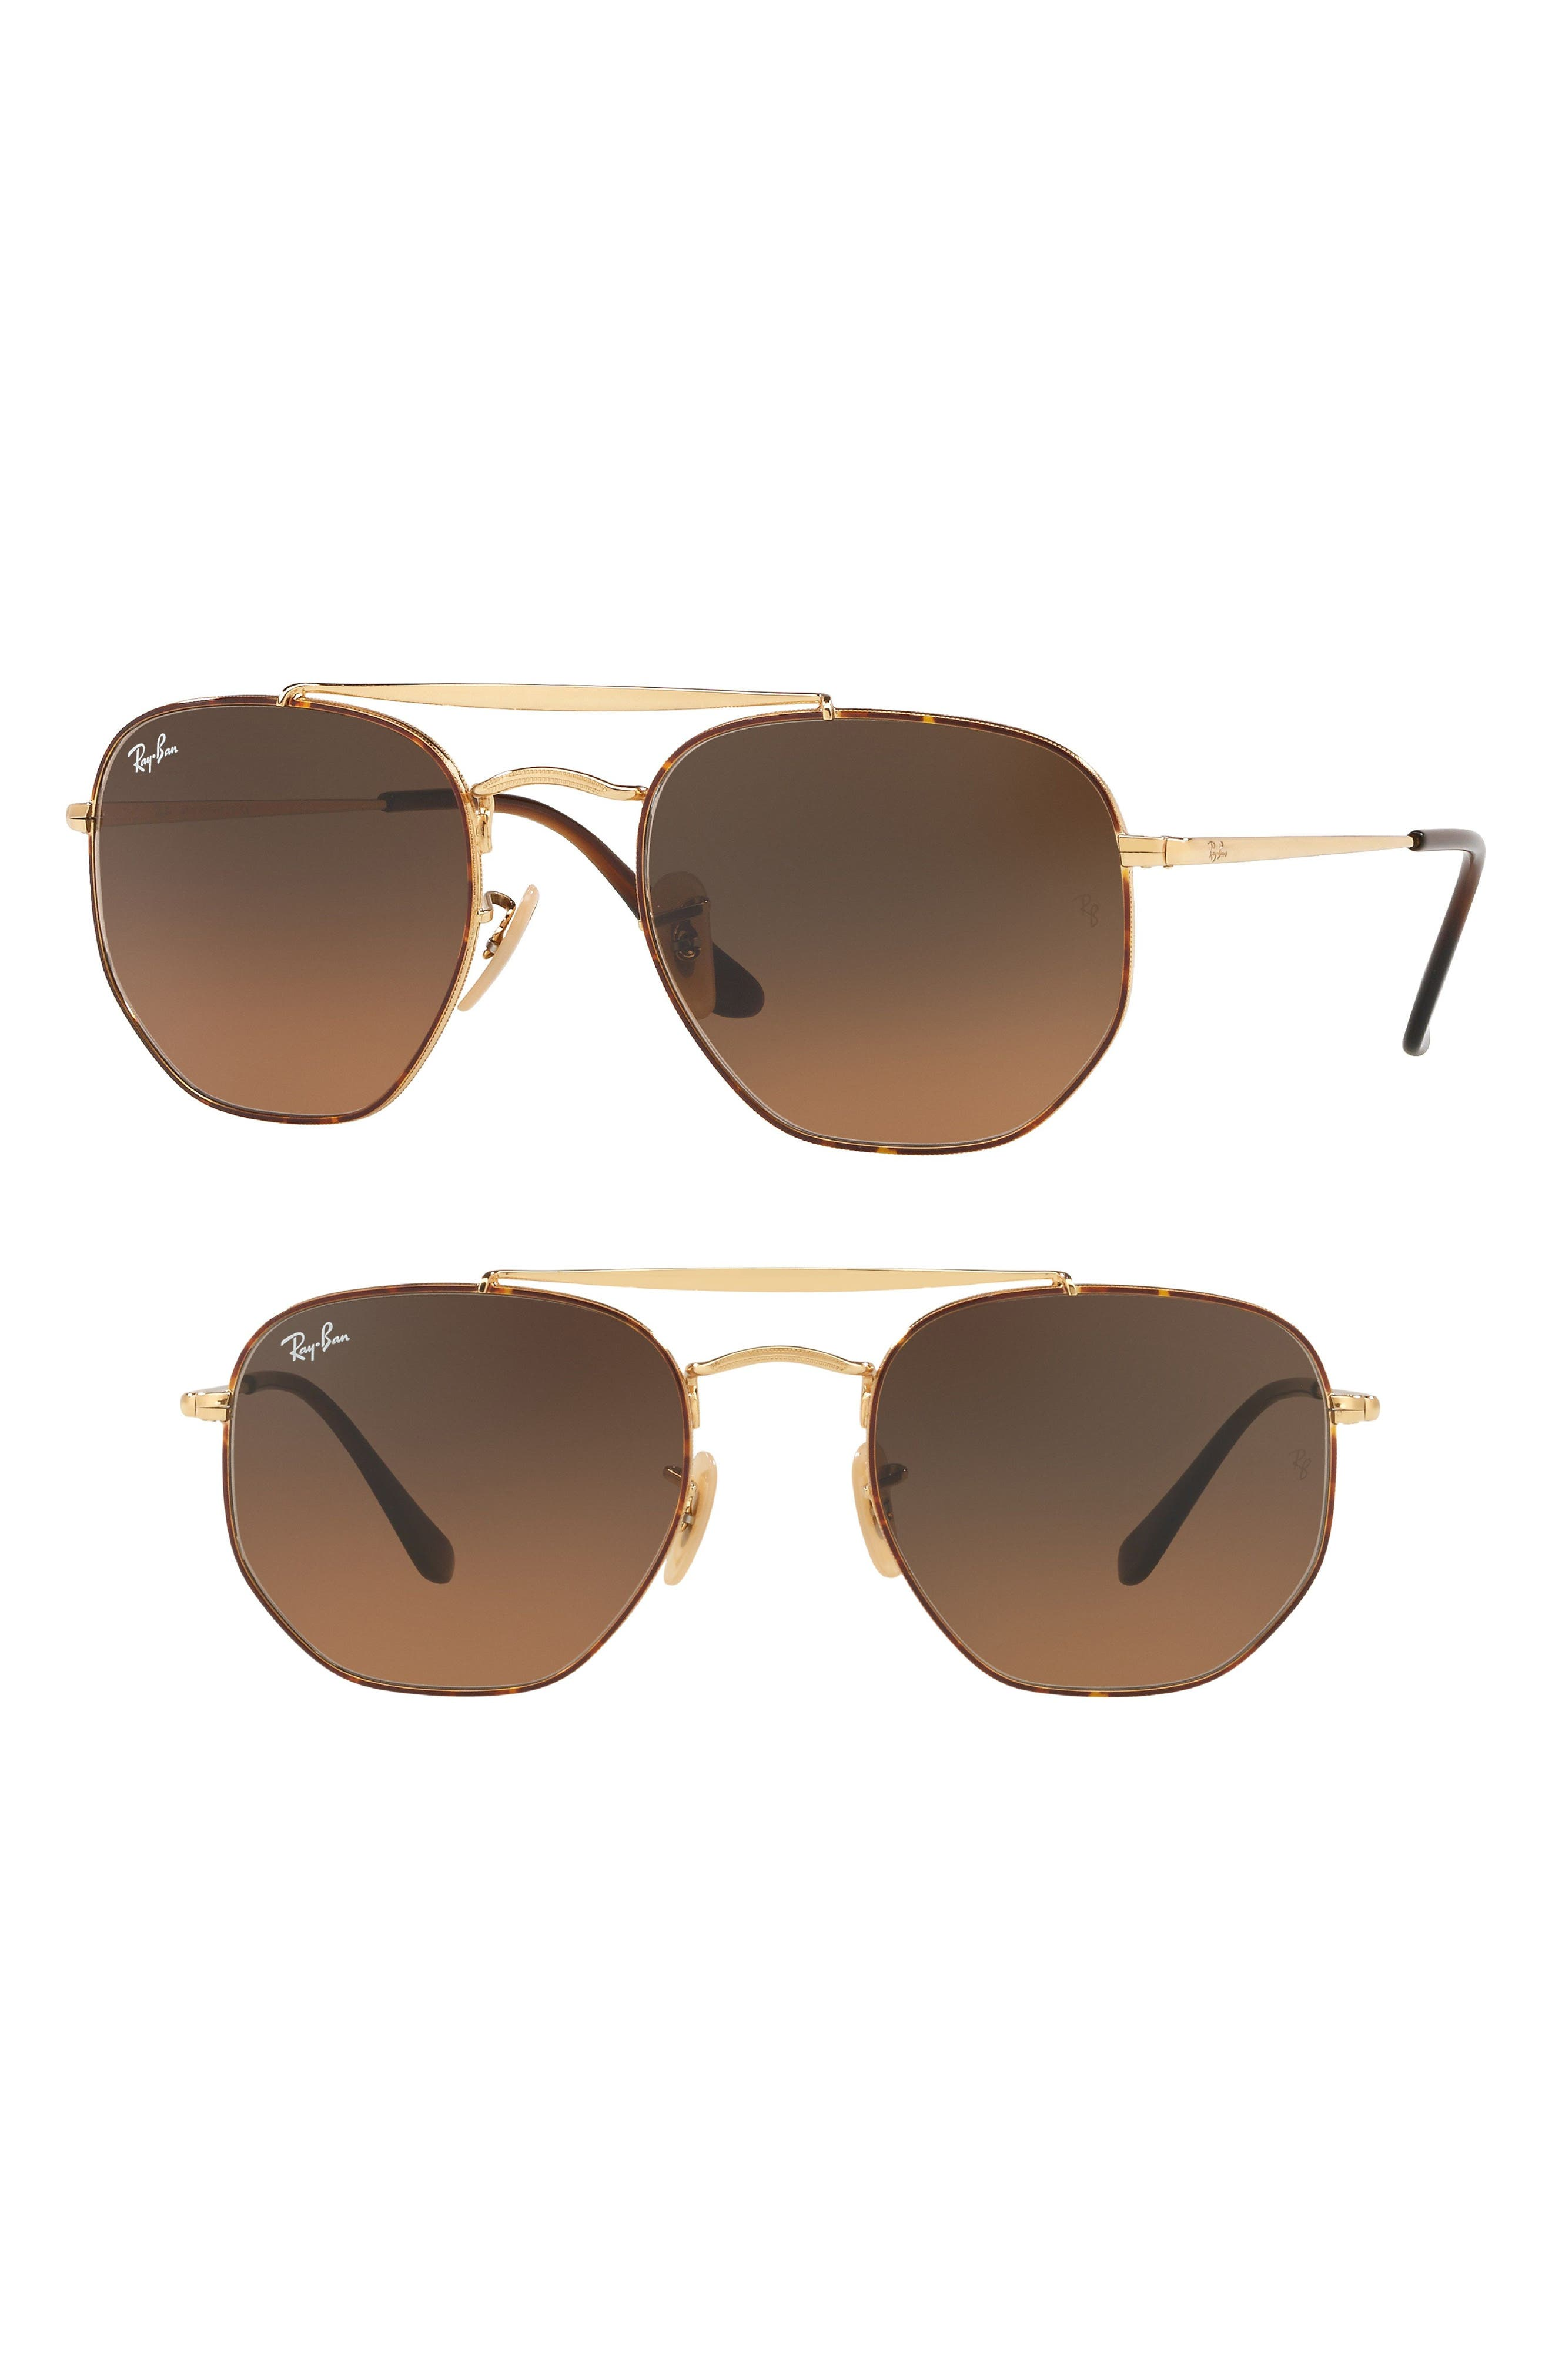 54mm Gradient Sunglasses,                         Main,                         color, HAVANA GRADIENT